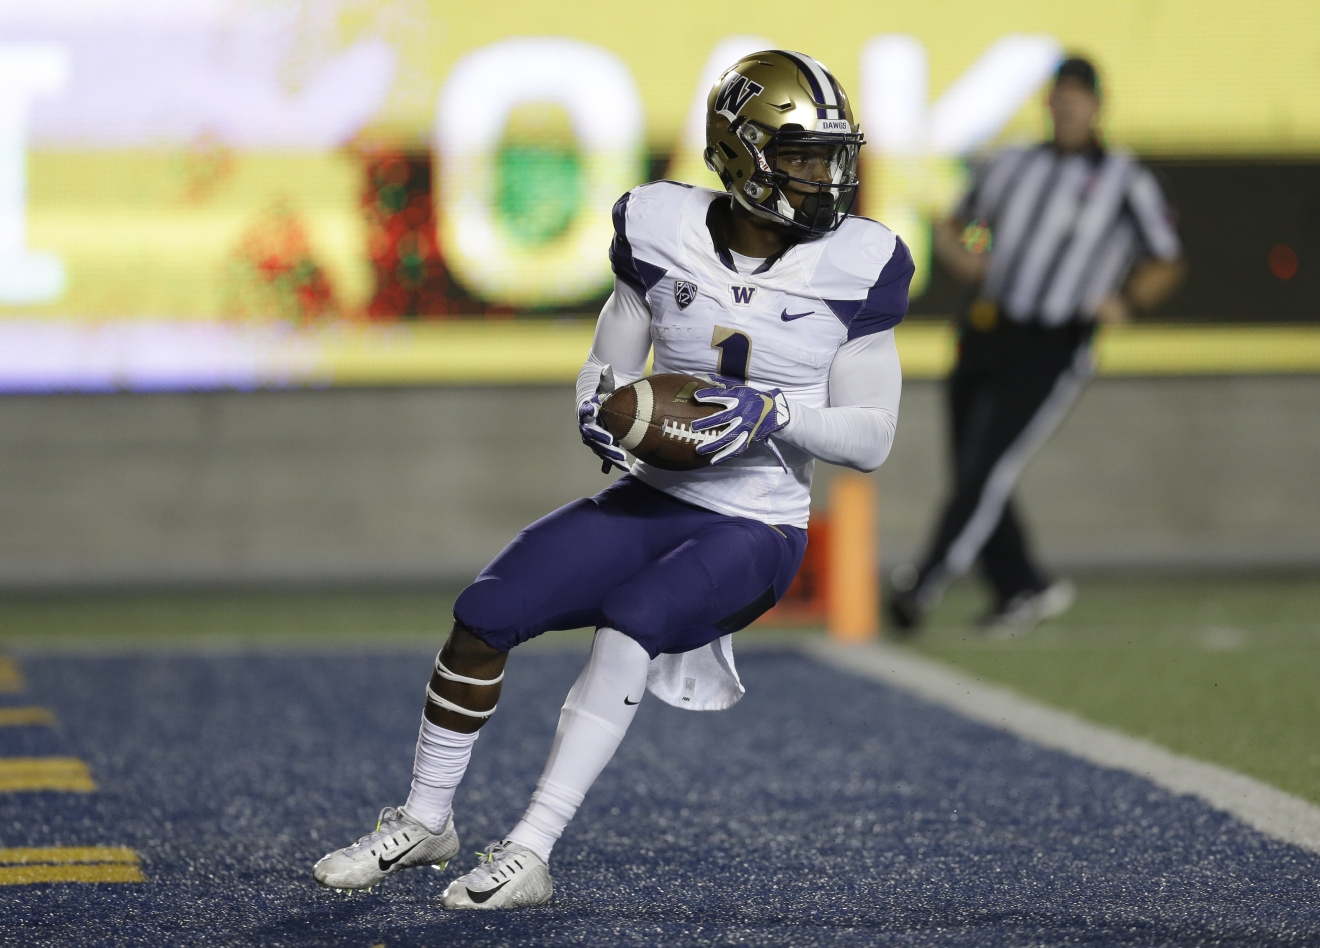 Washington's John Ross (1) celebrates after scoring a touchdown against California during the first quarter of an NCAA college football game Saturday, Nov. 5, 2016, in Berkeley, Calif. (AP Photo/Ben Margot)